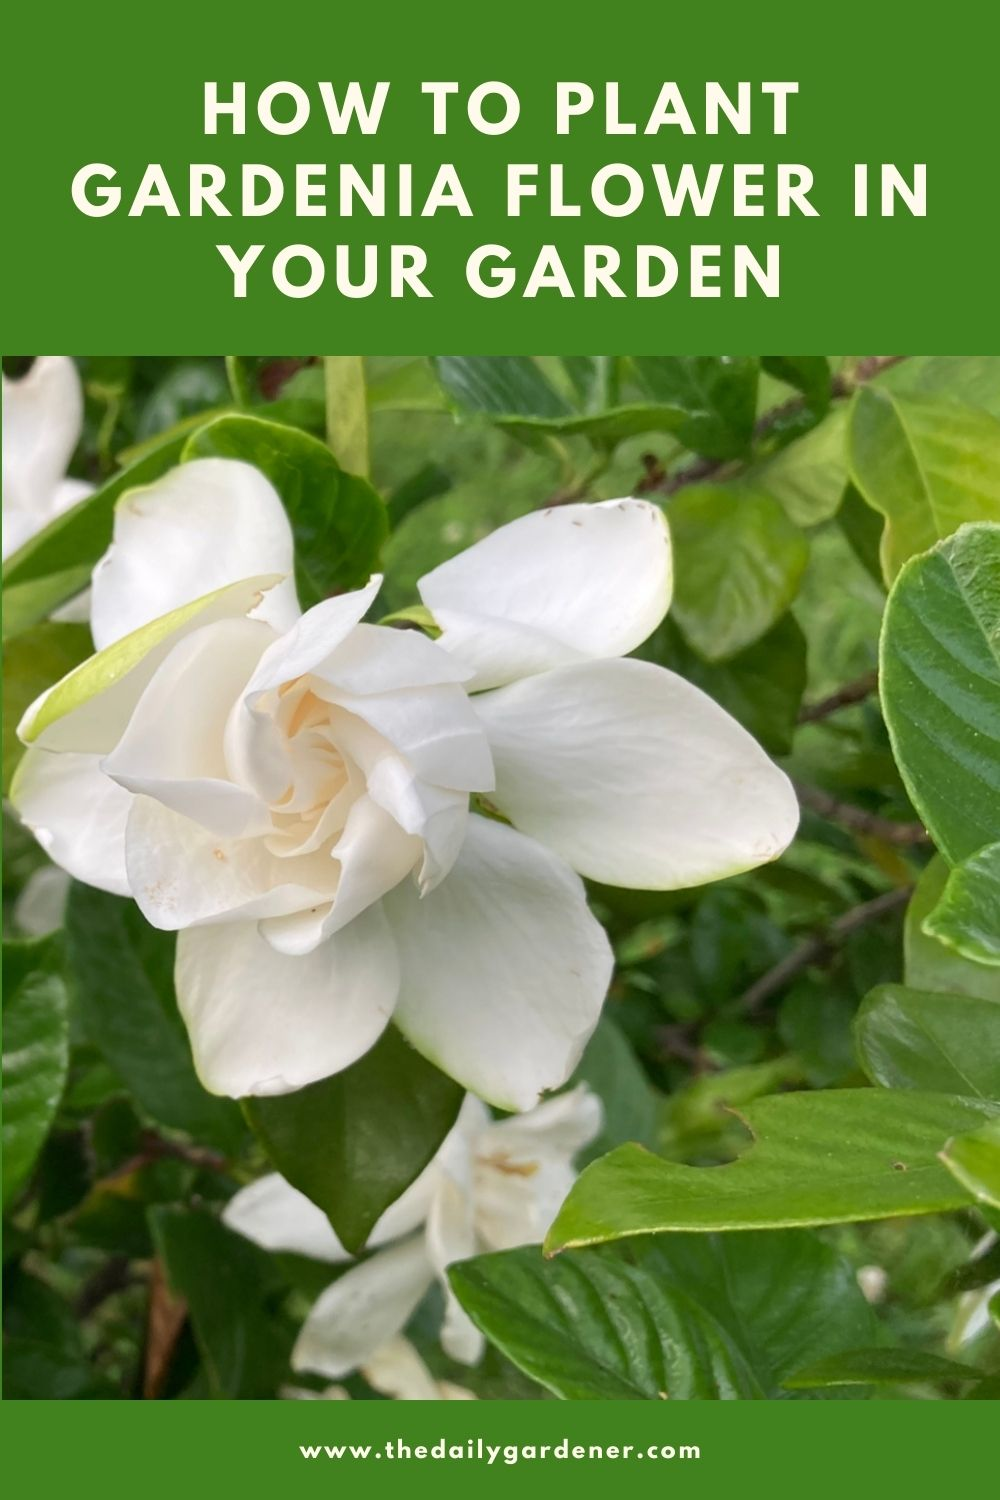 How to Plant Gardenia Flower in Your Garden (Tricks to Care!) 2